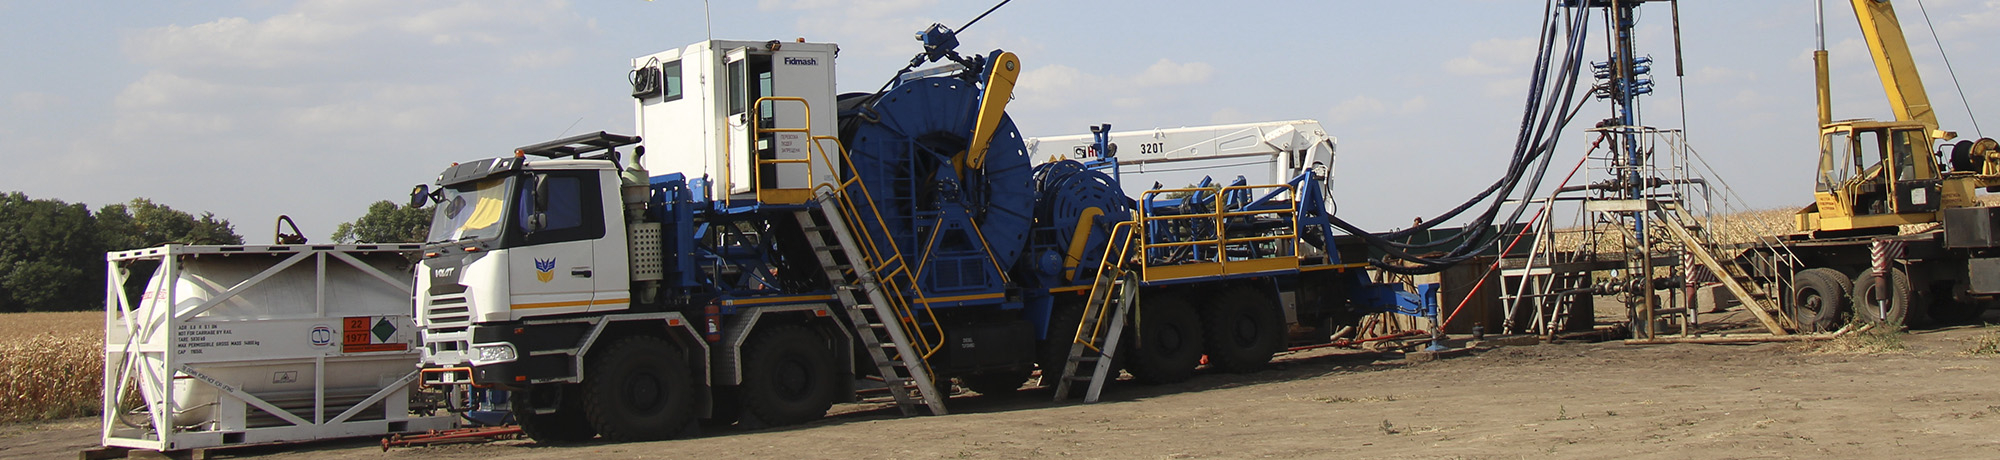 Well workover and coiled tubing technologies - 1